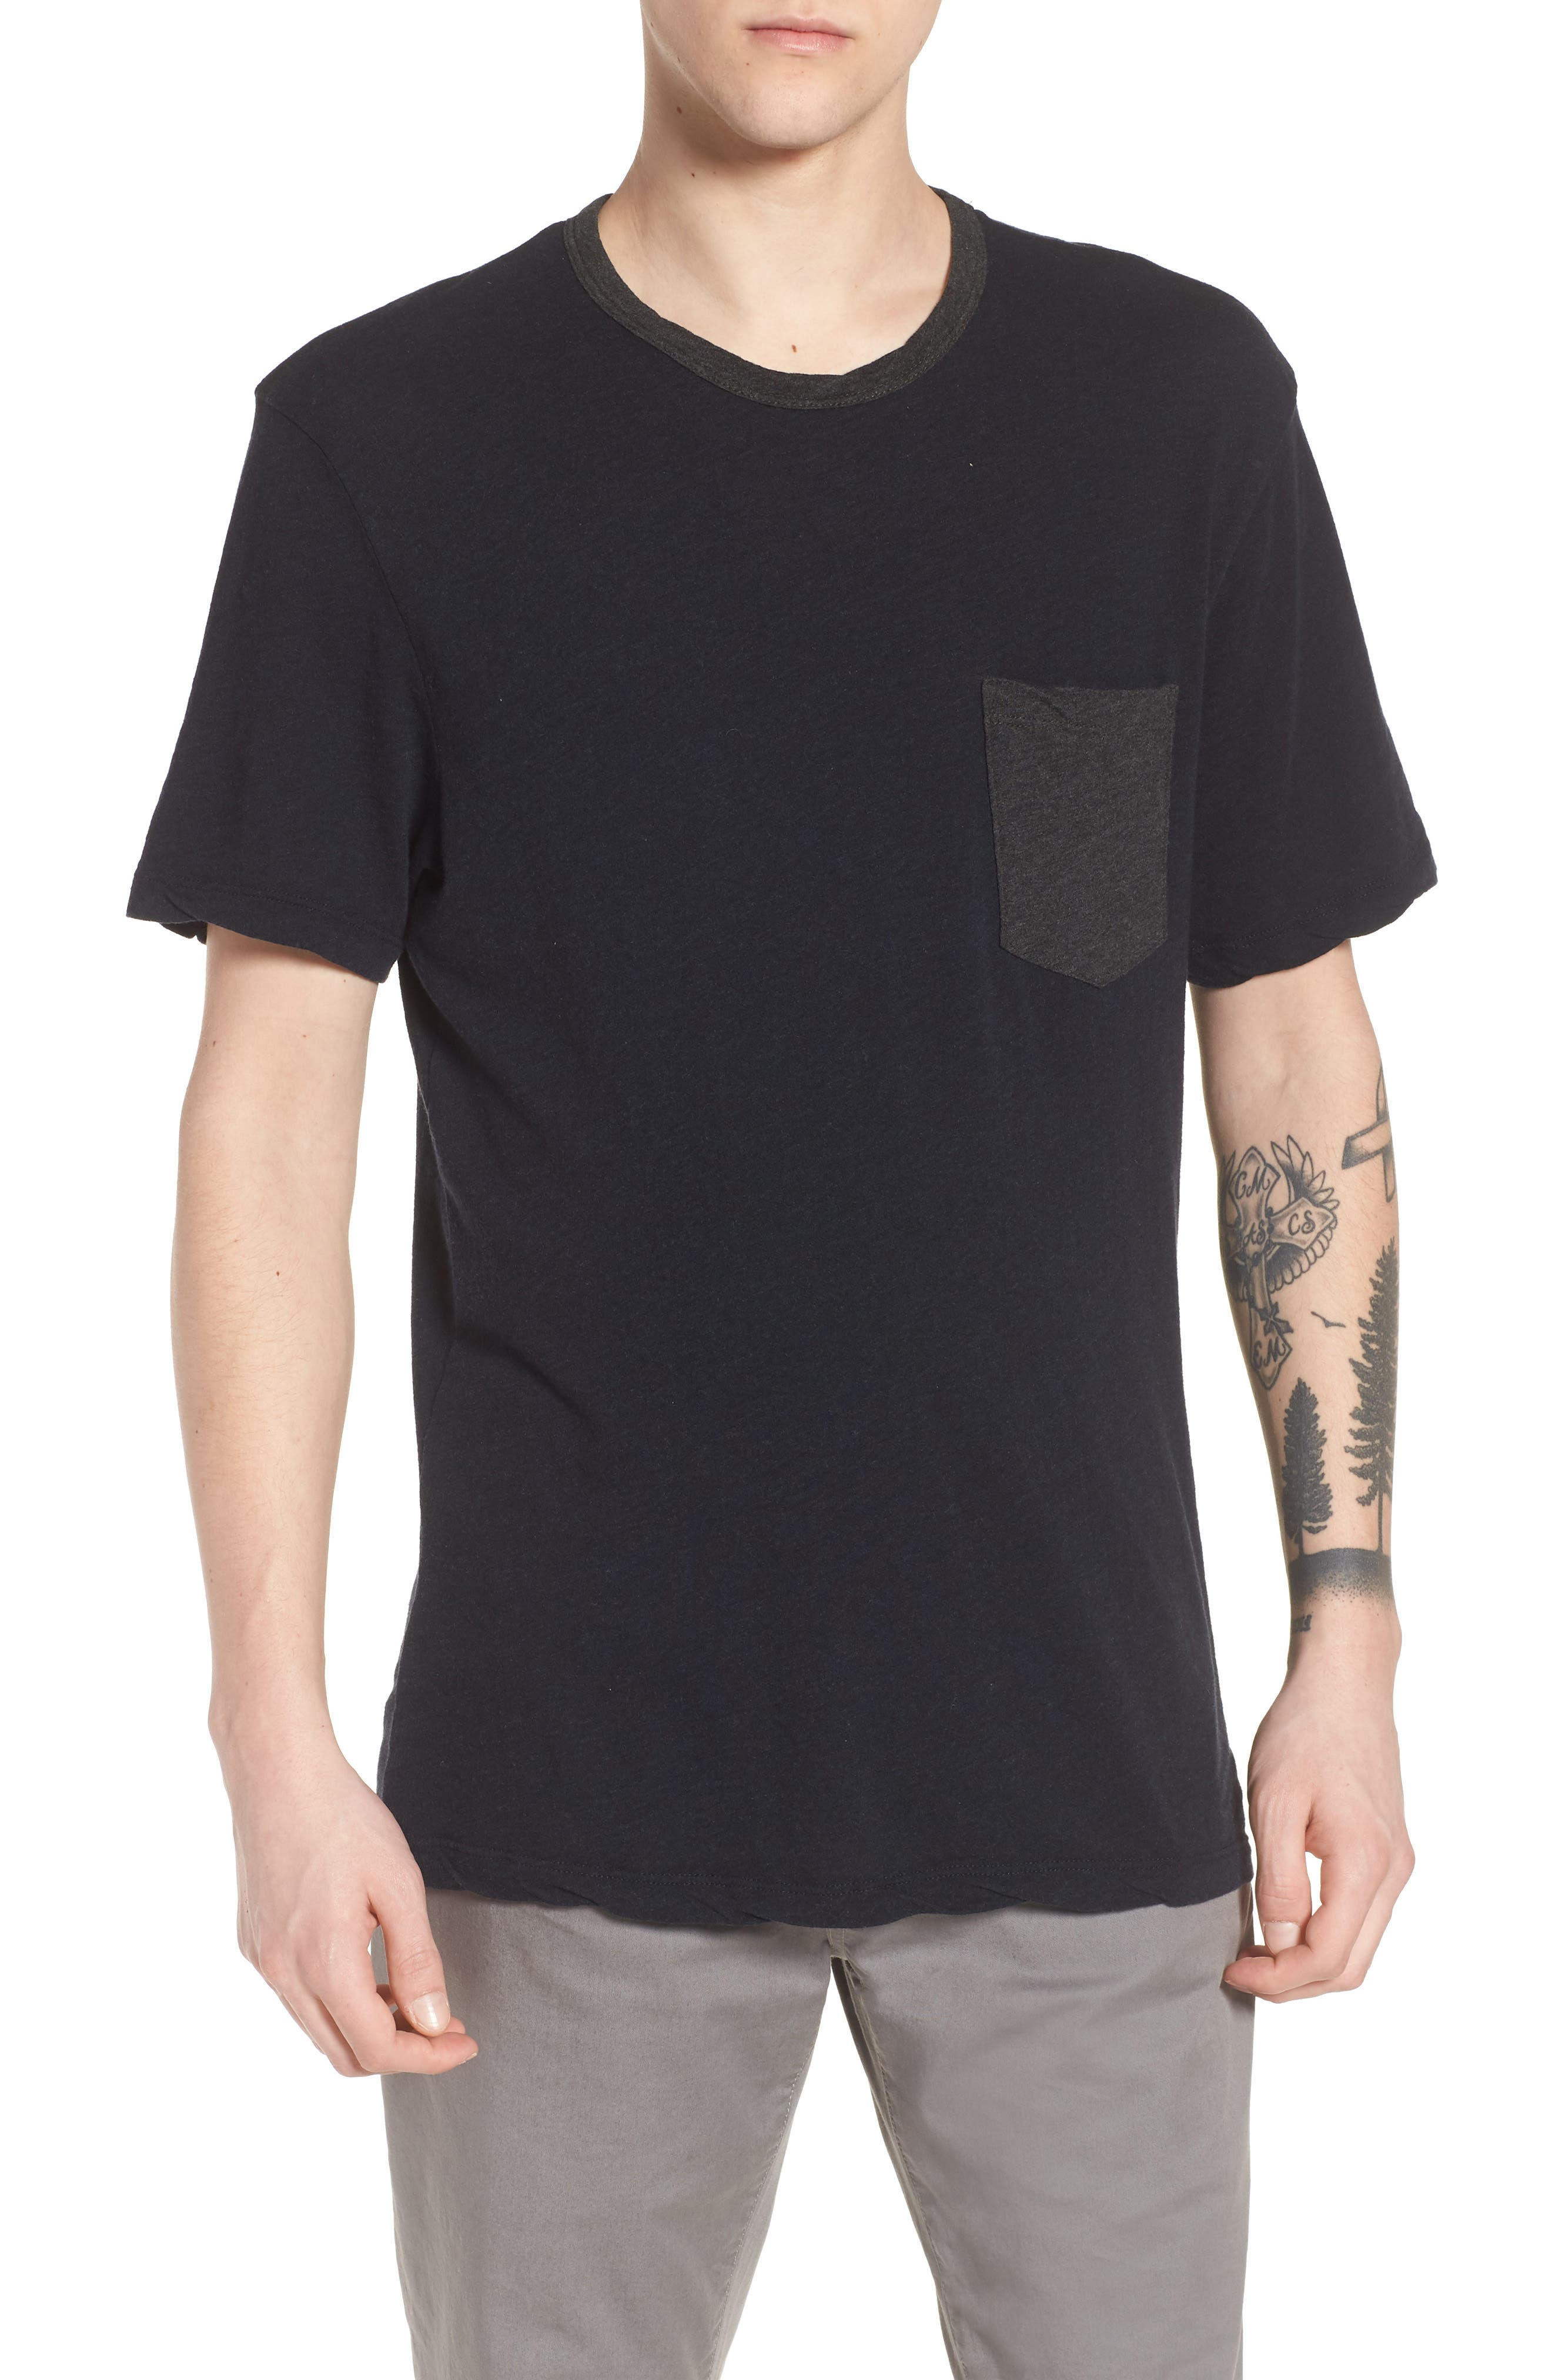 JAMES PERSE Two-Tone Pocket T-Shirt, Main, color, 001